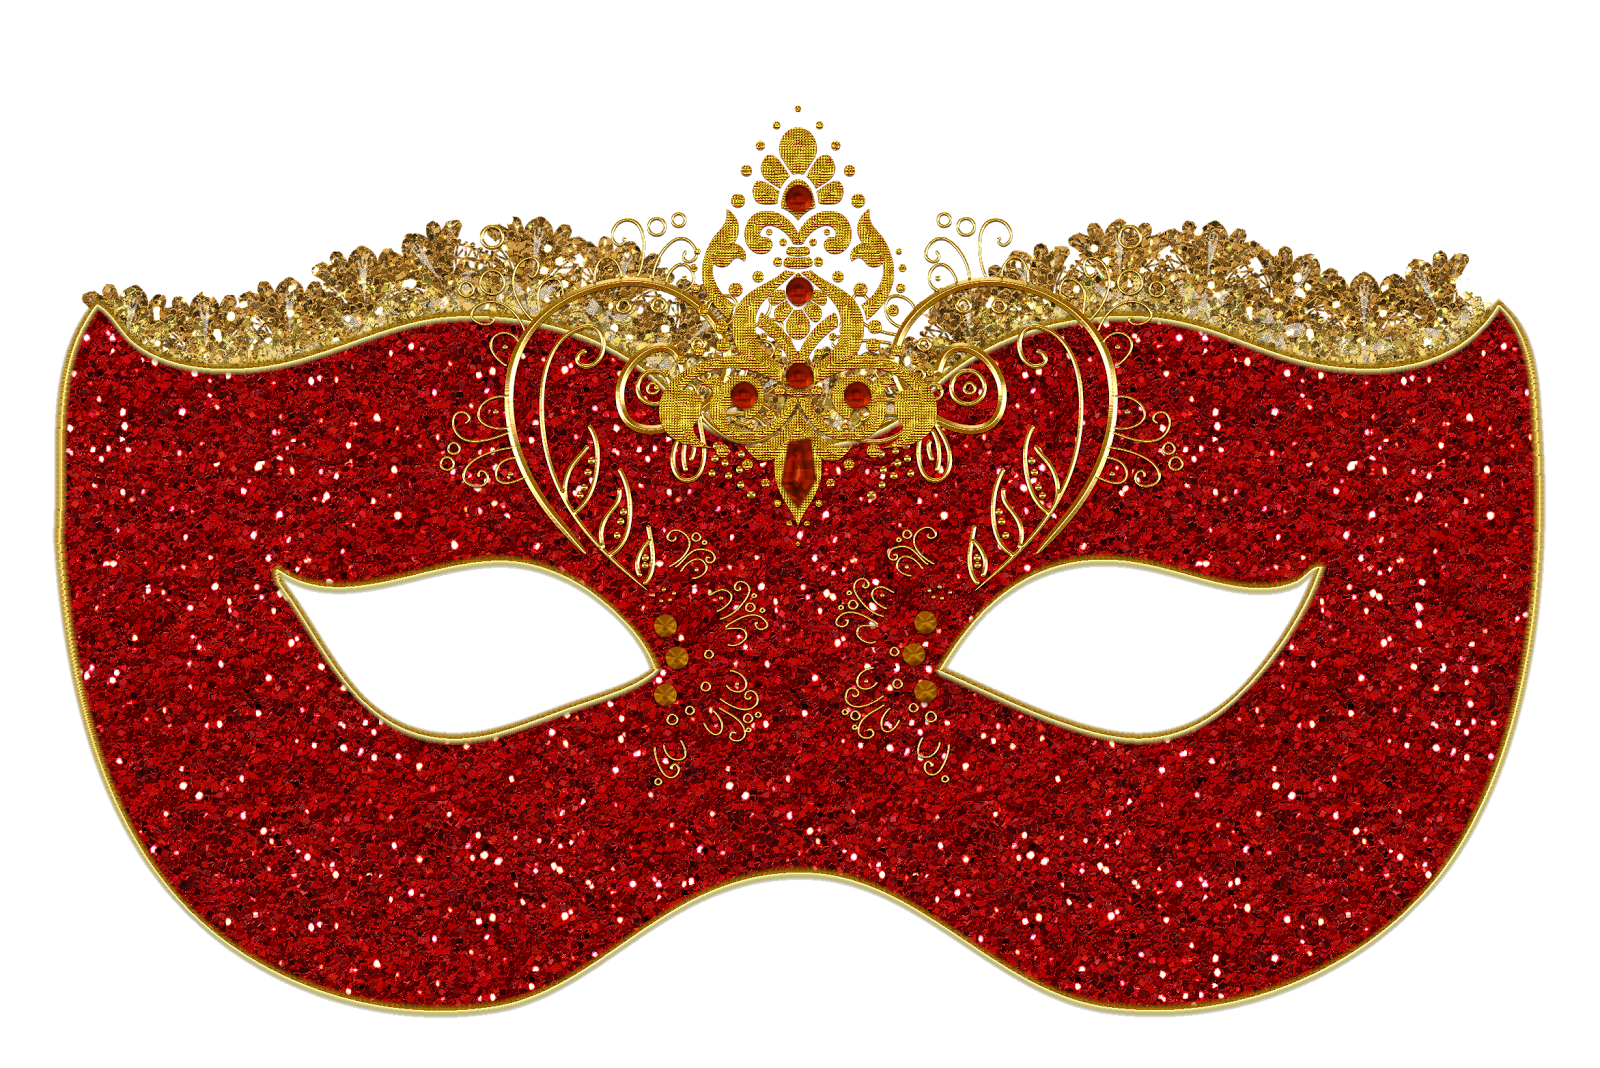 Masquerade Mask Png Hd Transparent Masquerade Mask Hd Png